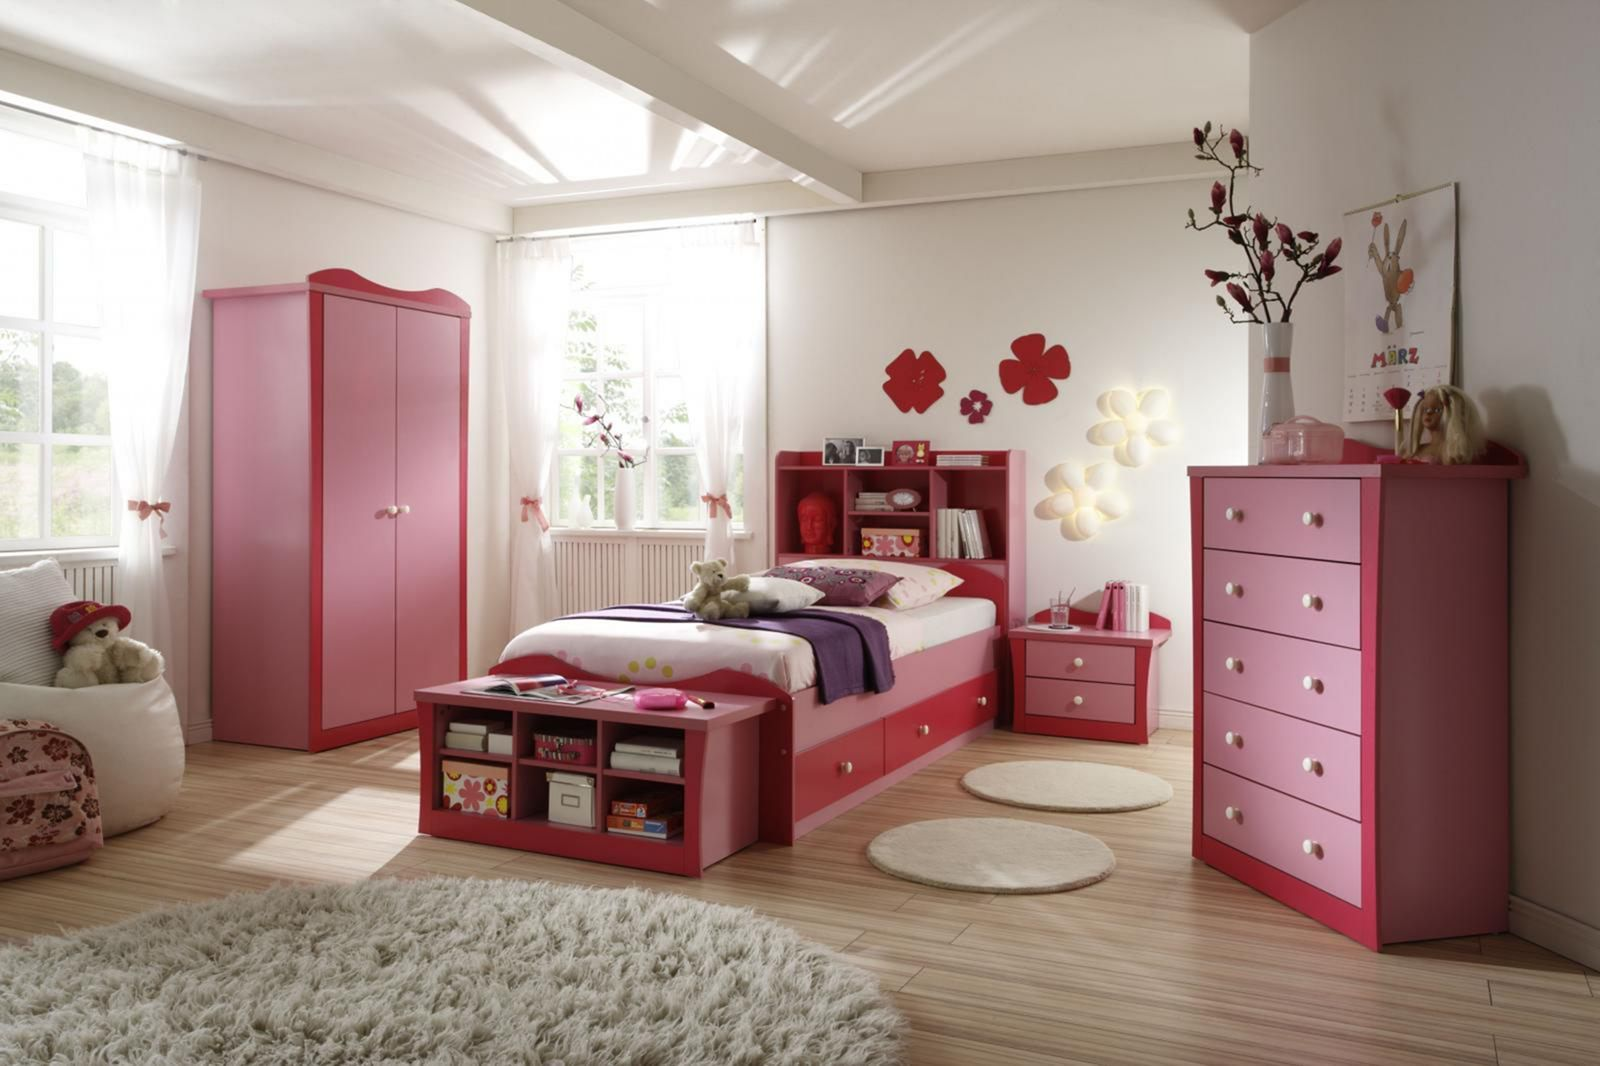 15 Best Girl Bedroom Design Ideas You Have Must See images